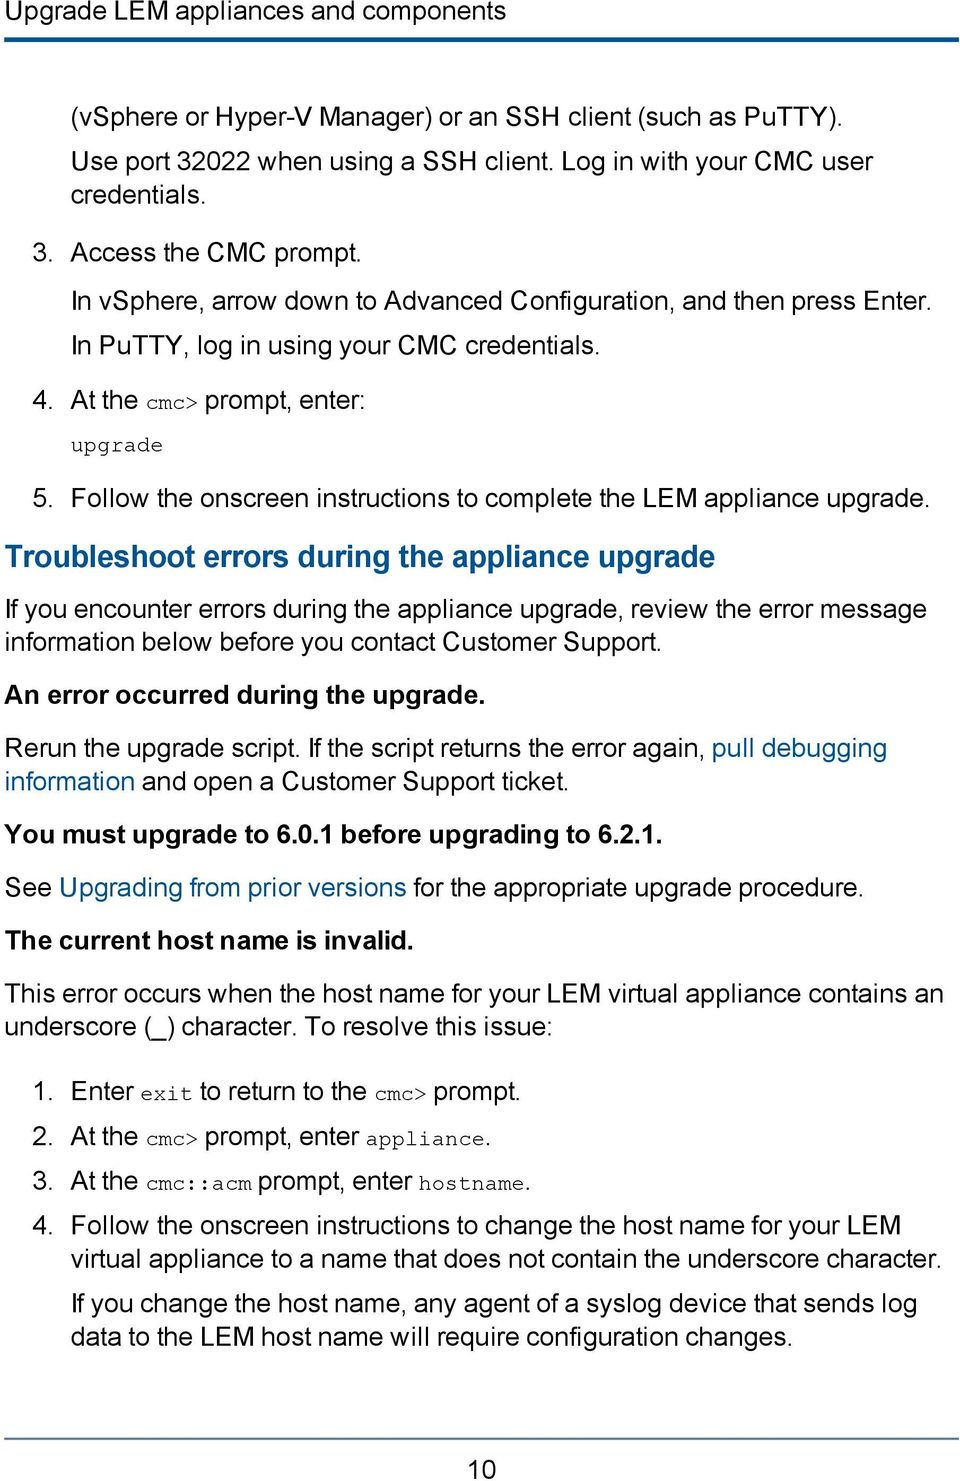 Follow the onscreen instructions to complete the LEM appliance upgrade.